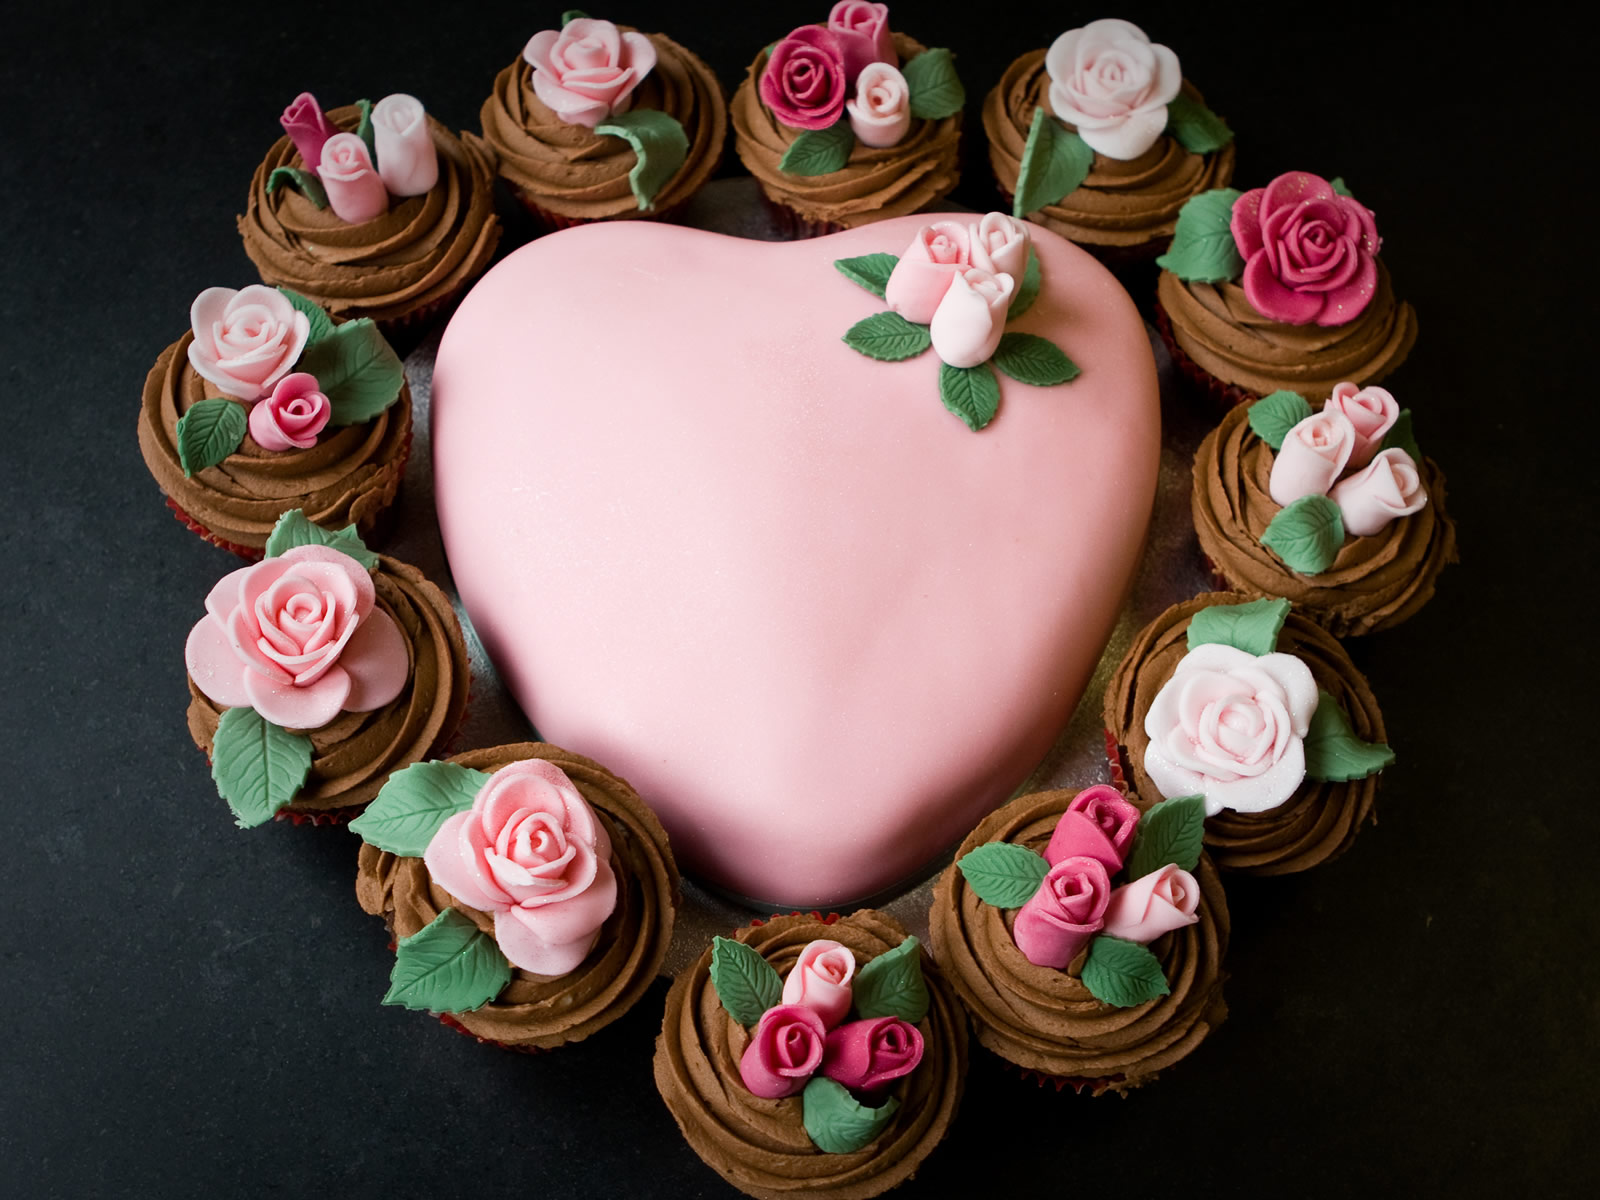 Heart Shape Cake Decoration At Home : Android Phones Wallpapers: Android Wallpaper Heart Shaped Cake